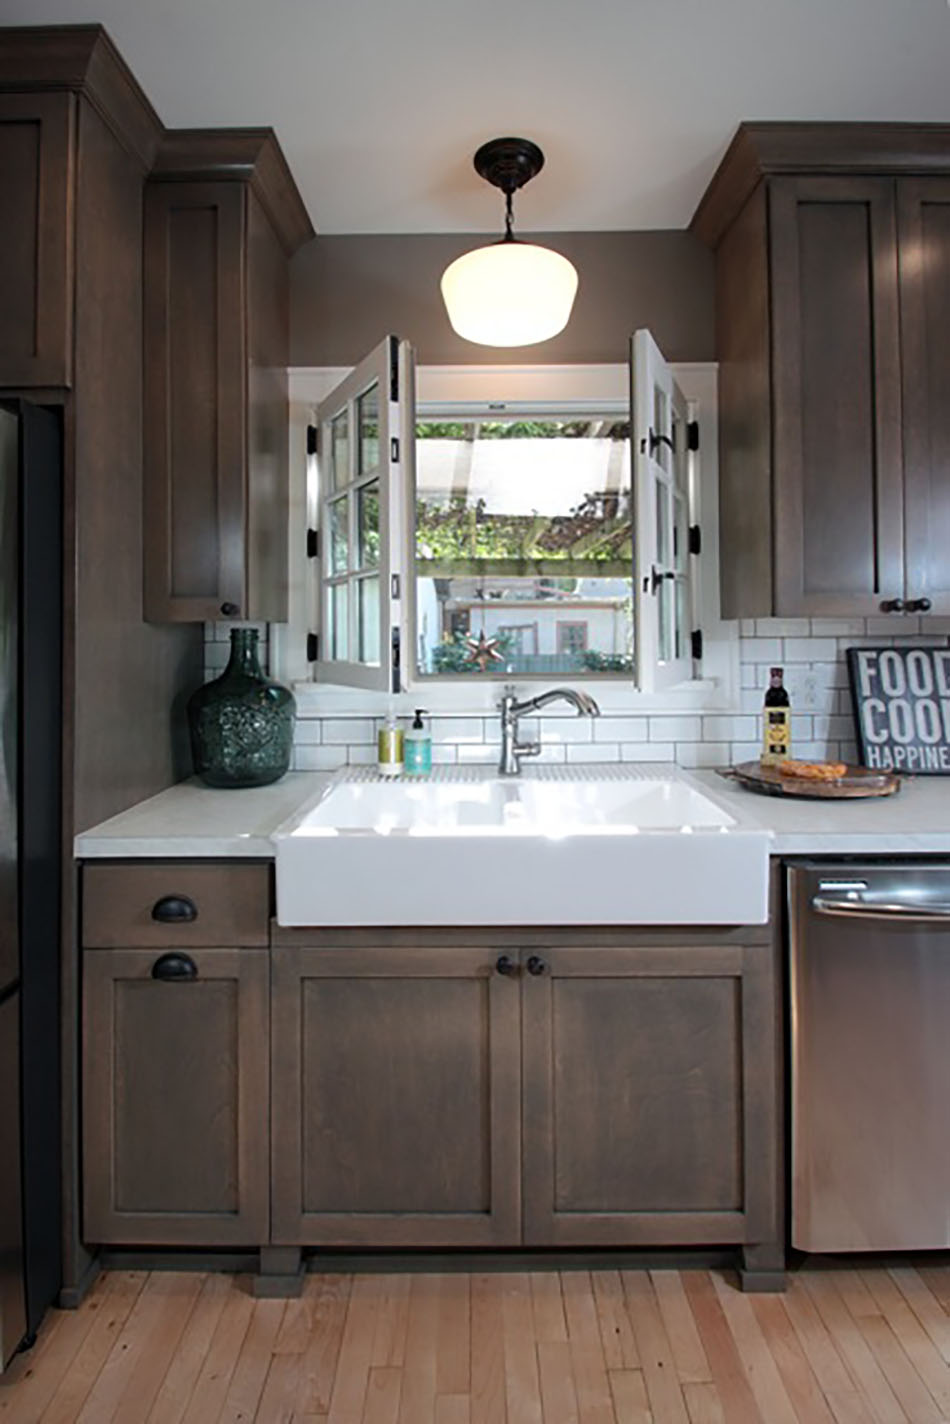 in-swing-in-French-casement-window-double-sink